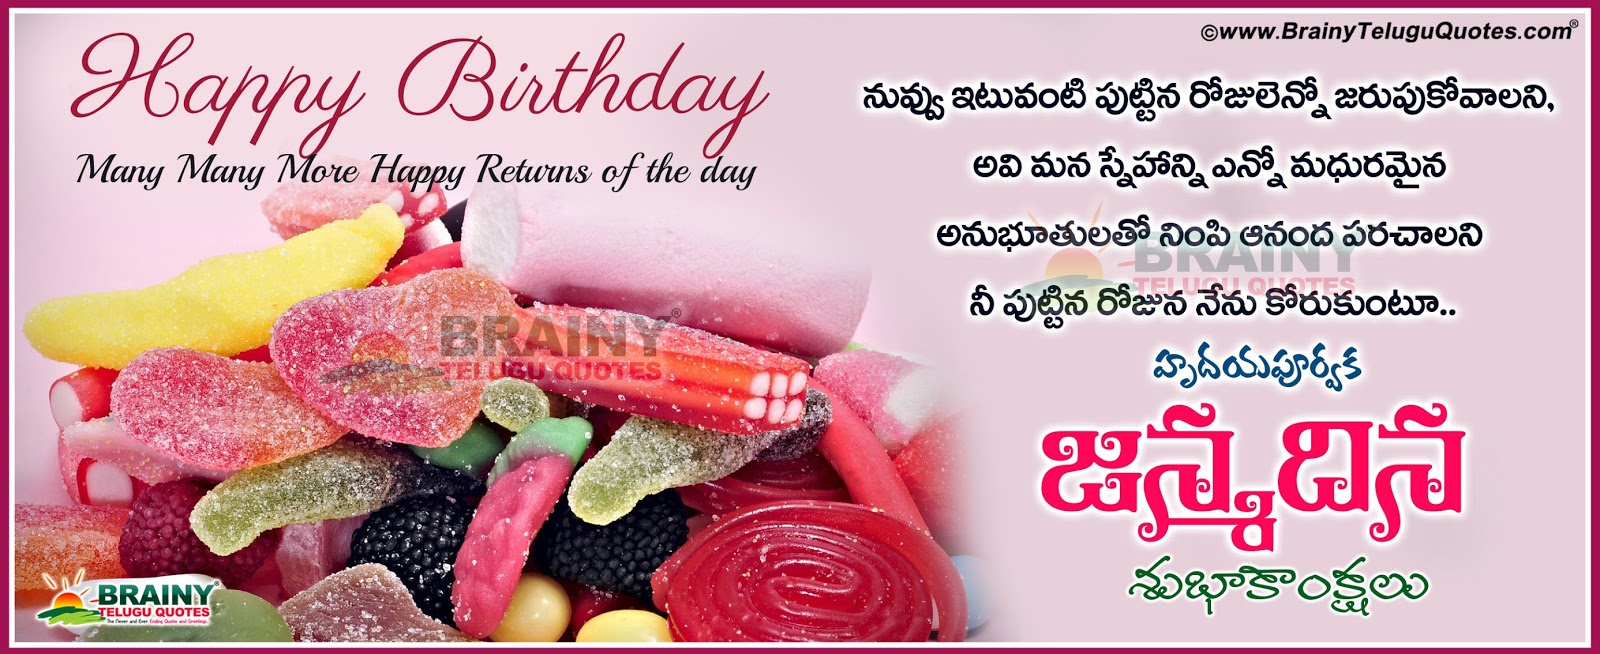 Happy birthday greeting in telugu with best wishes for facebook happy birthday greeting in telugu with best wishes for facebook cover pics kristyandbryce Choice Image